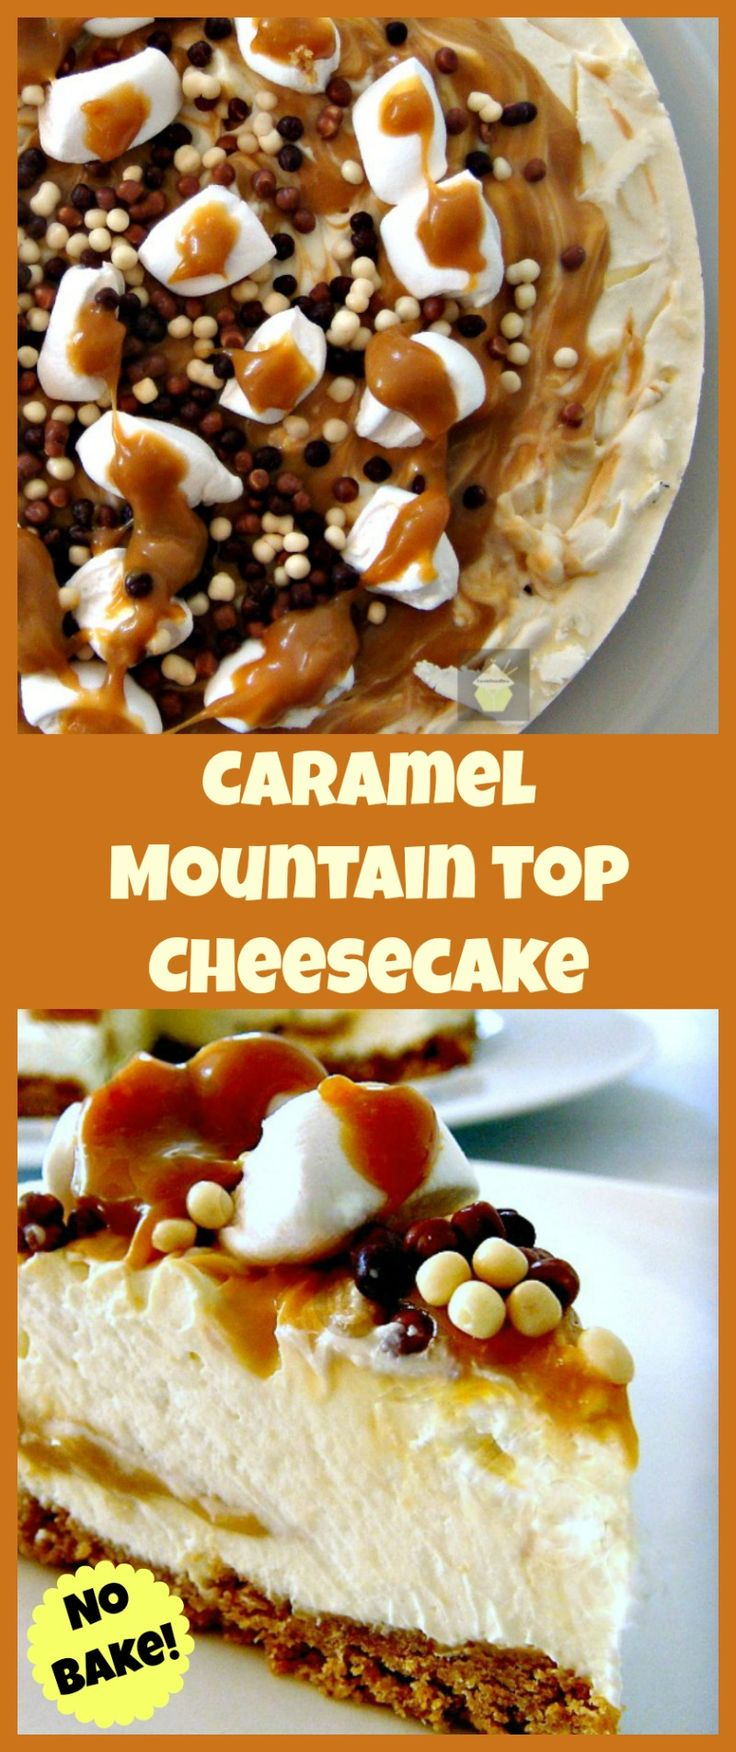 Caramel Mountain Top Cheesecake. No Bake and very easy to make. Come and see what's inside this stunning dessert!